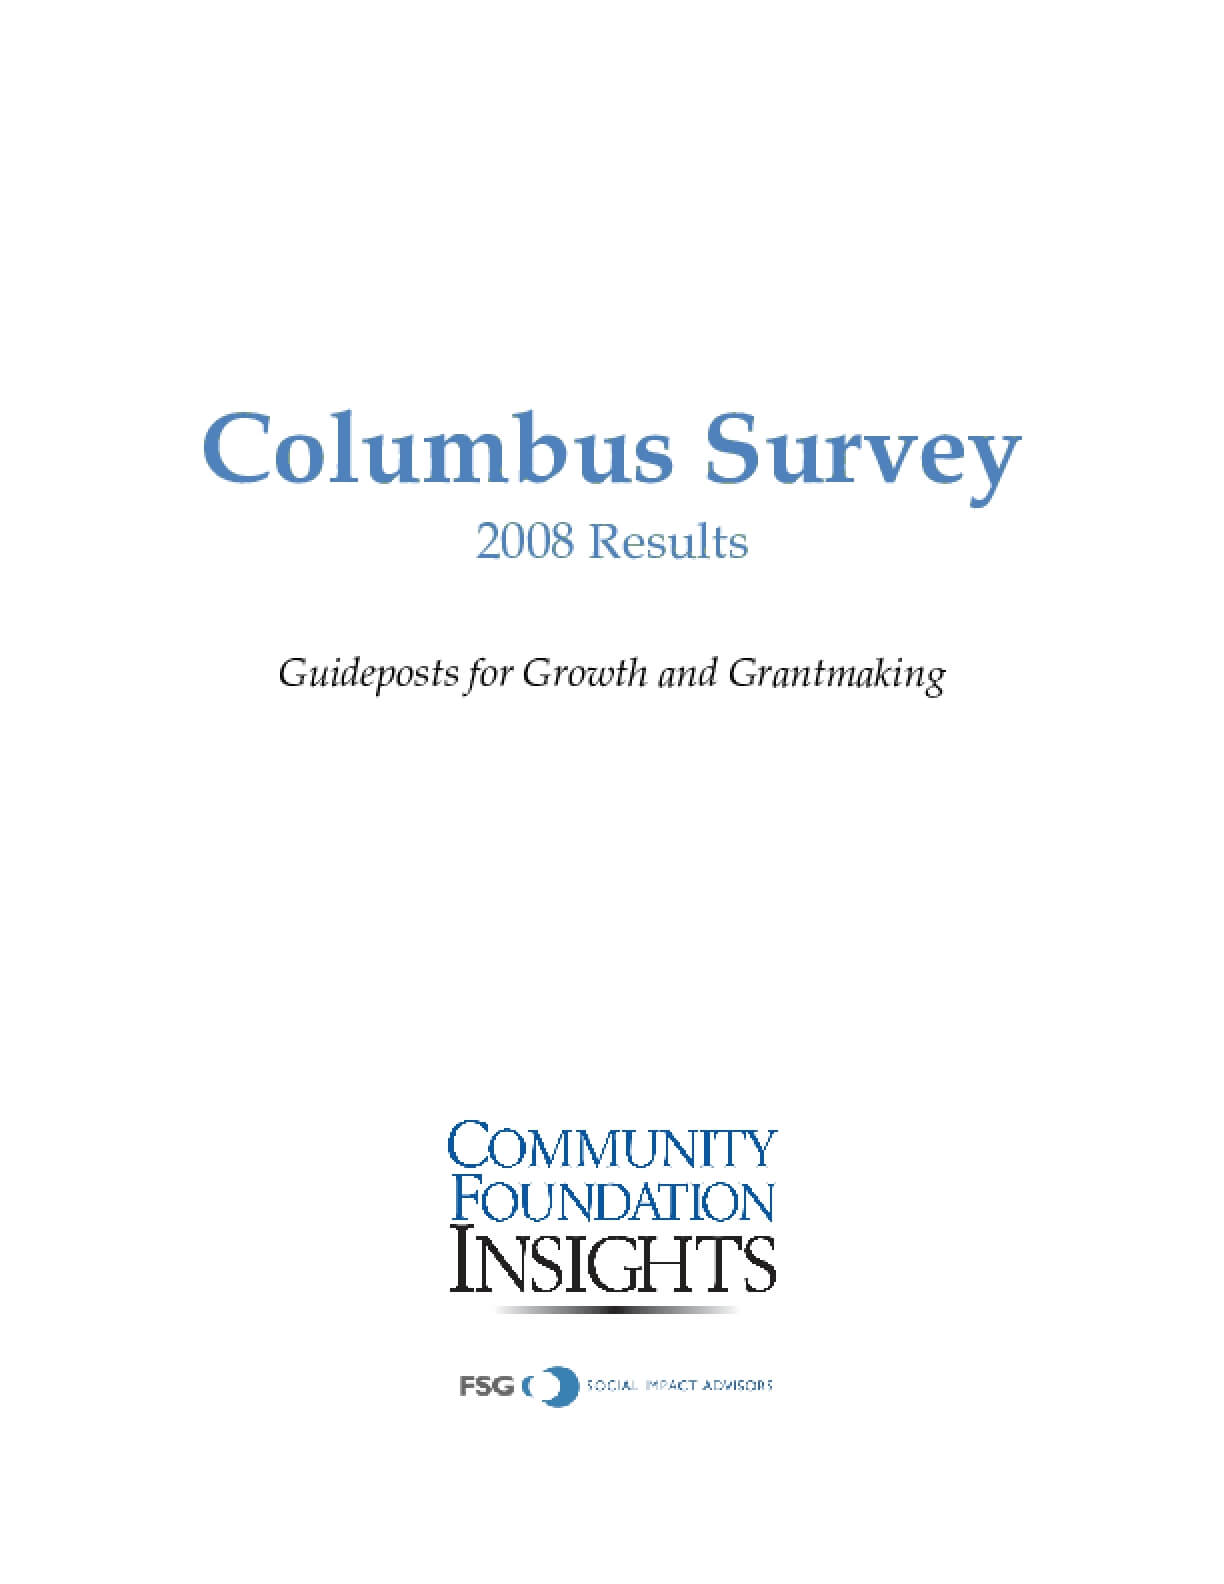 2008 Columbus Survey Results: Guideposts for Growth and Grantmaking